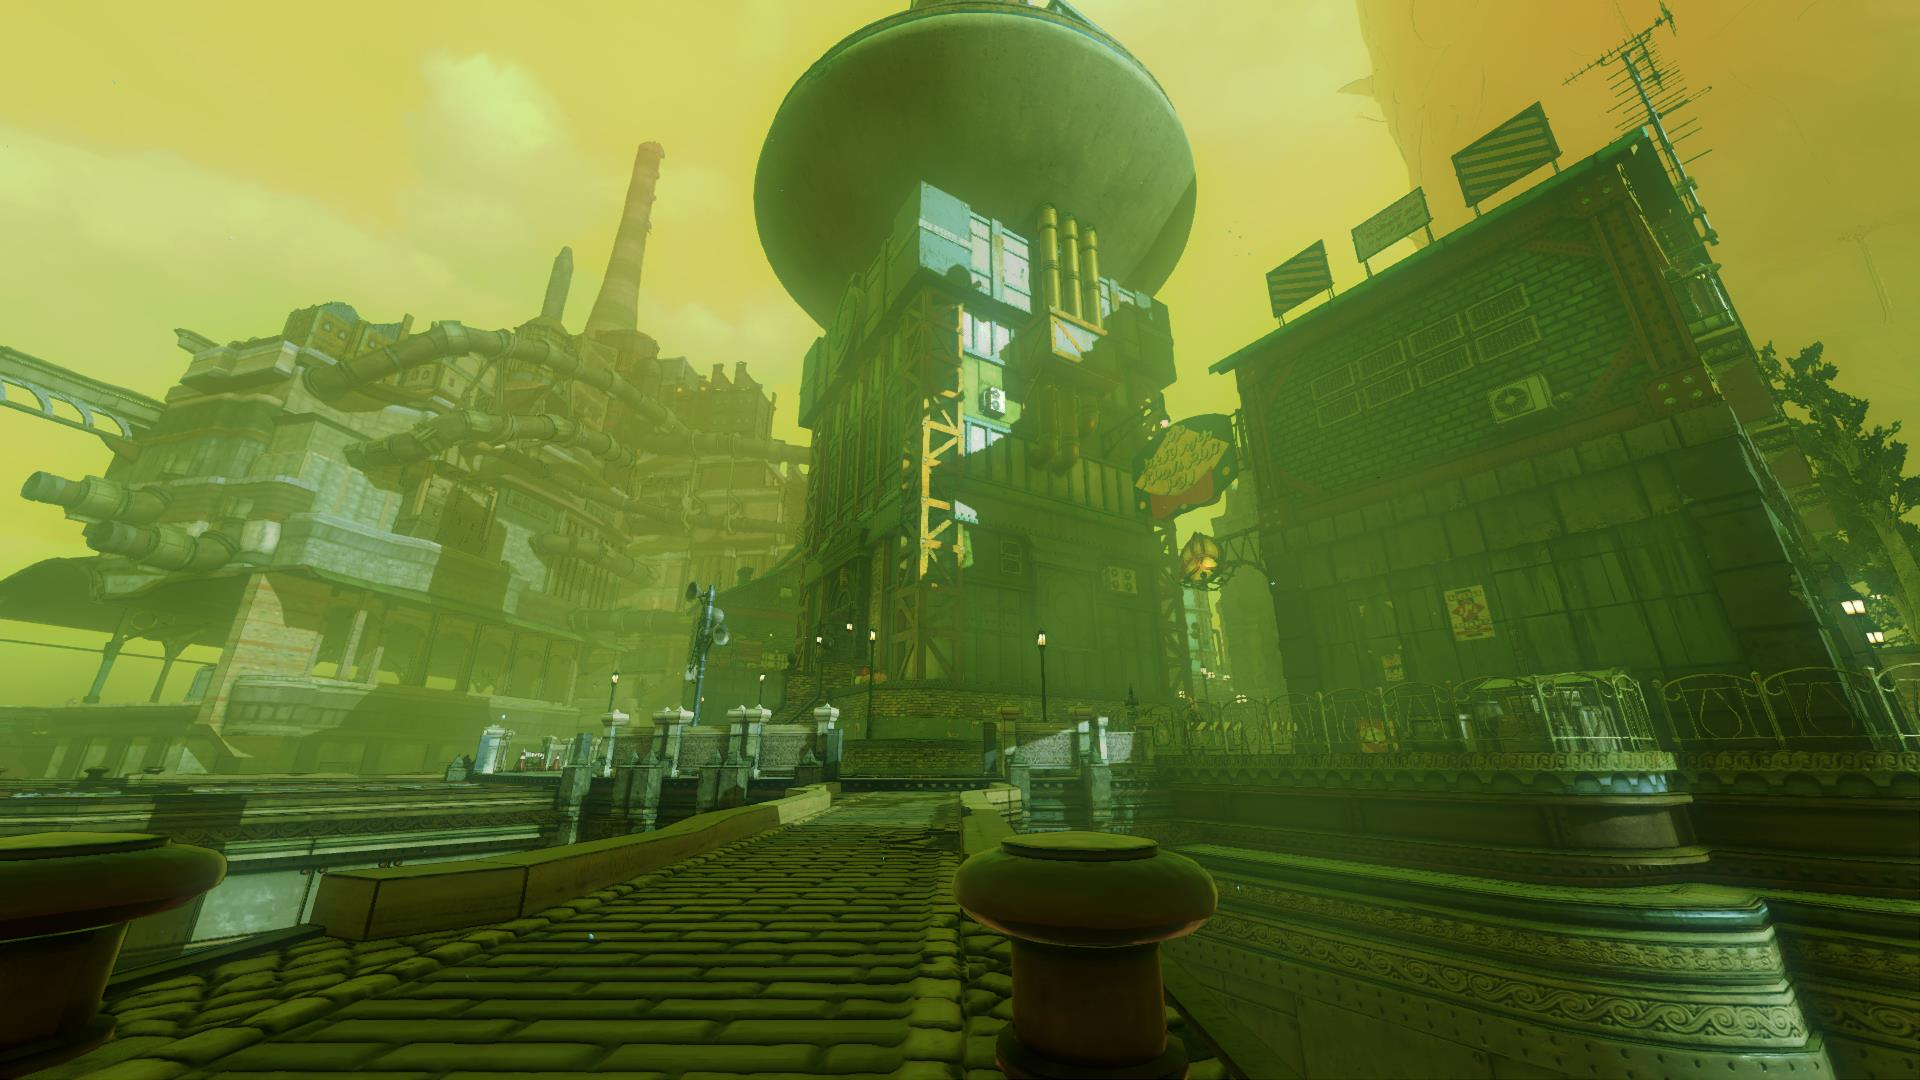 Hilo Oficial Gravity Rush 2 Another Story The Ark Of